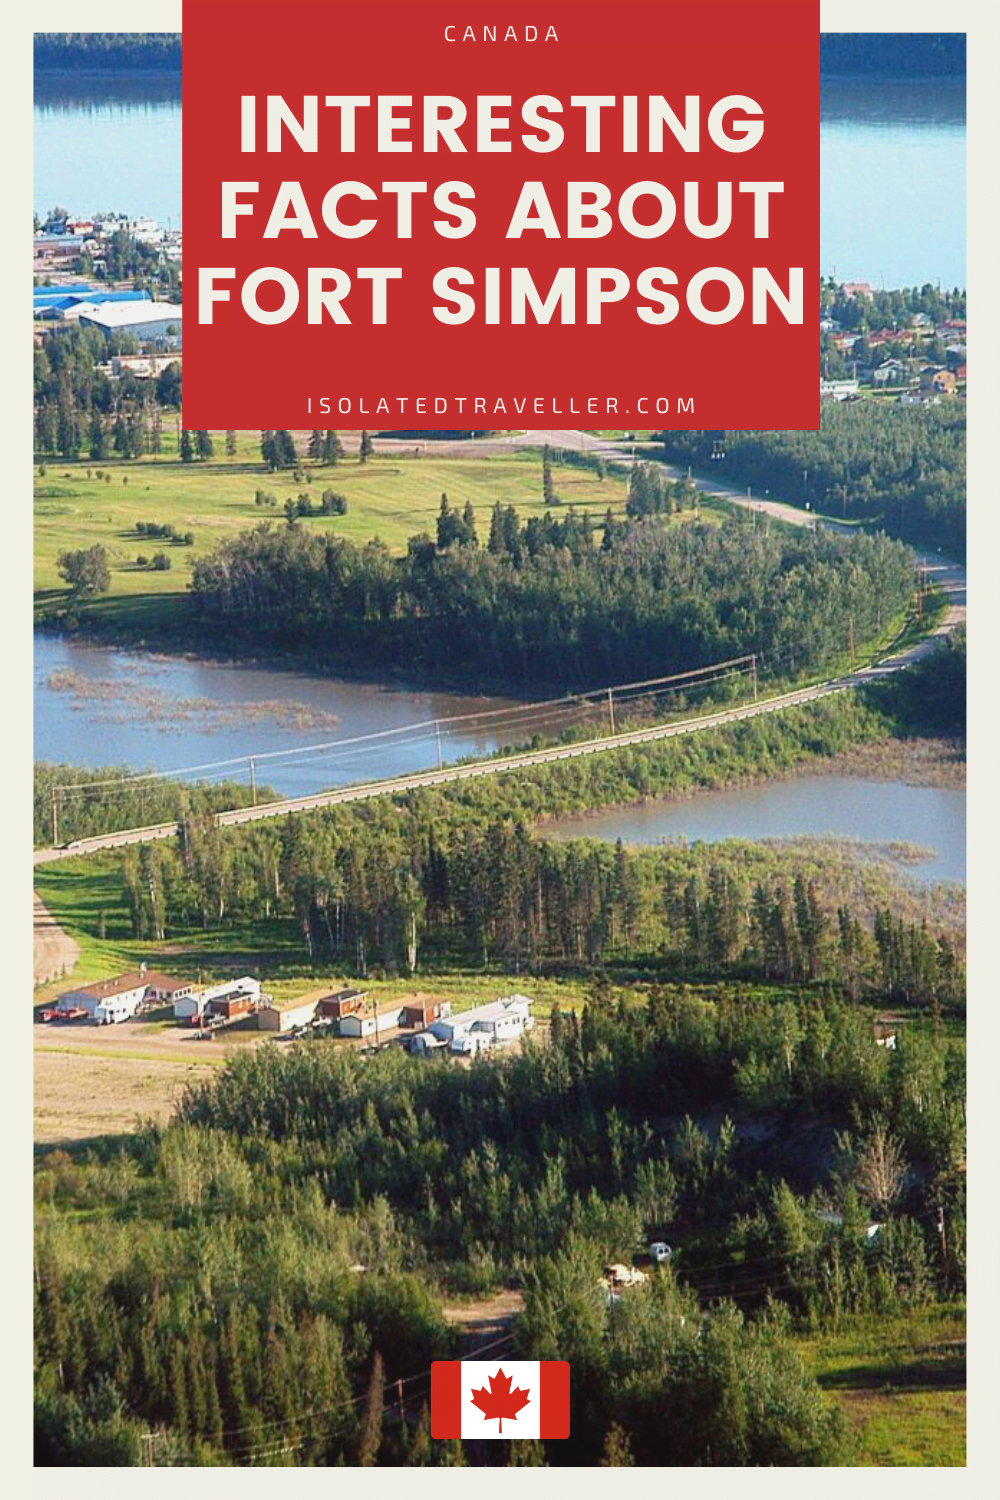 Facts About Fort Simpson